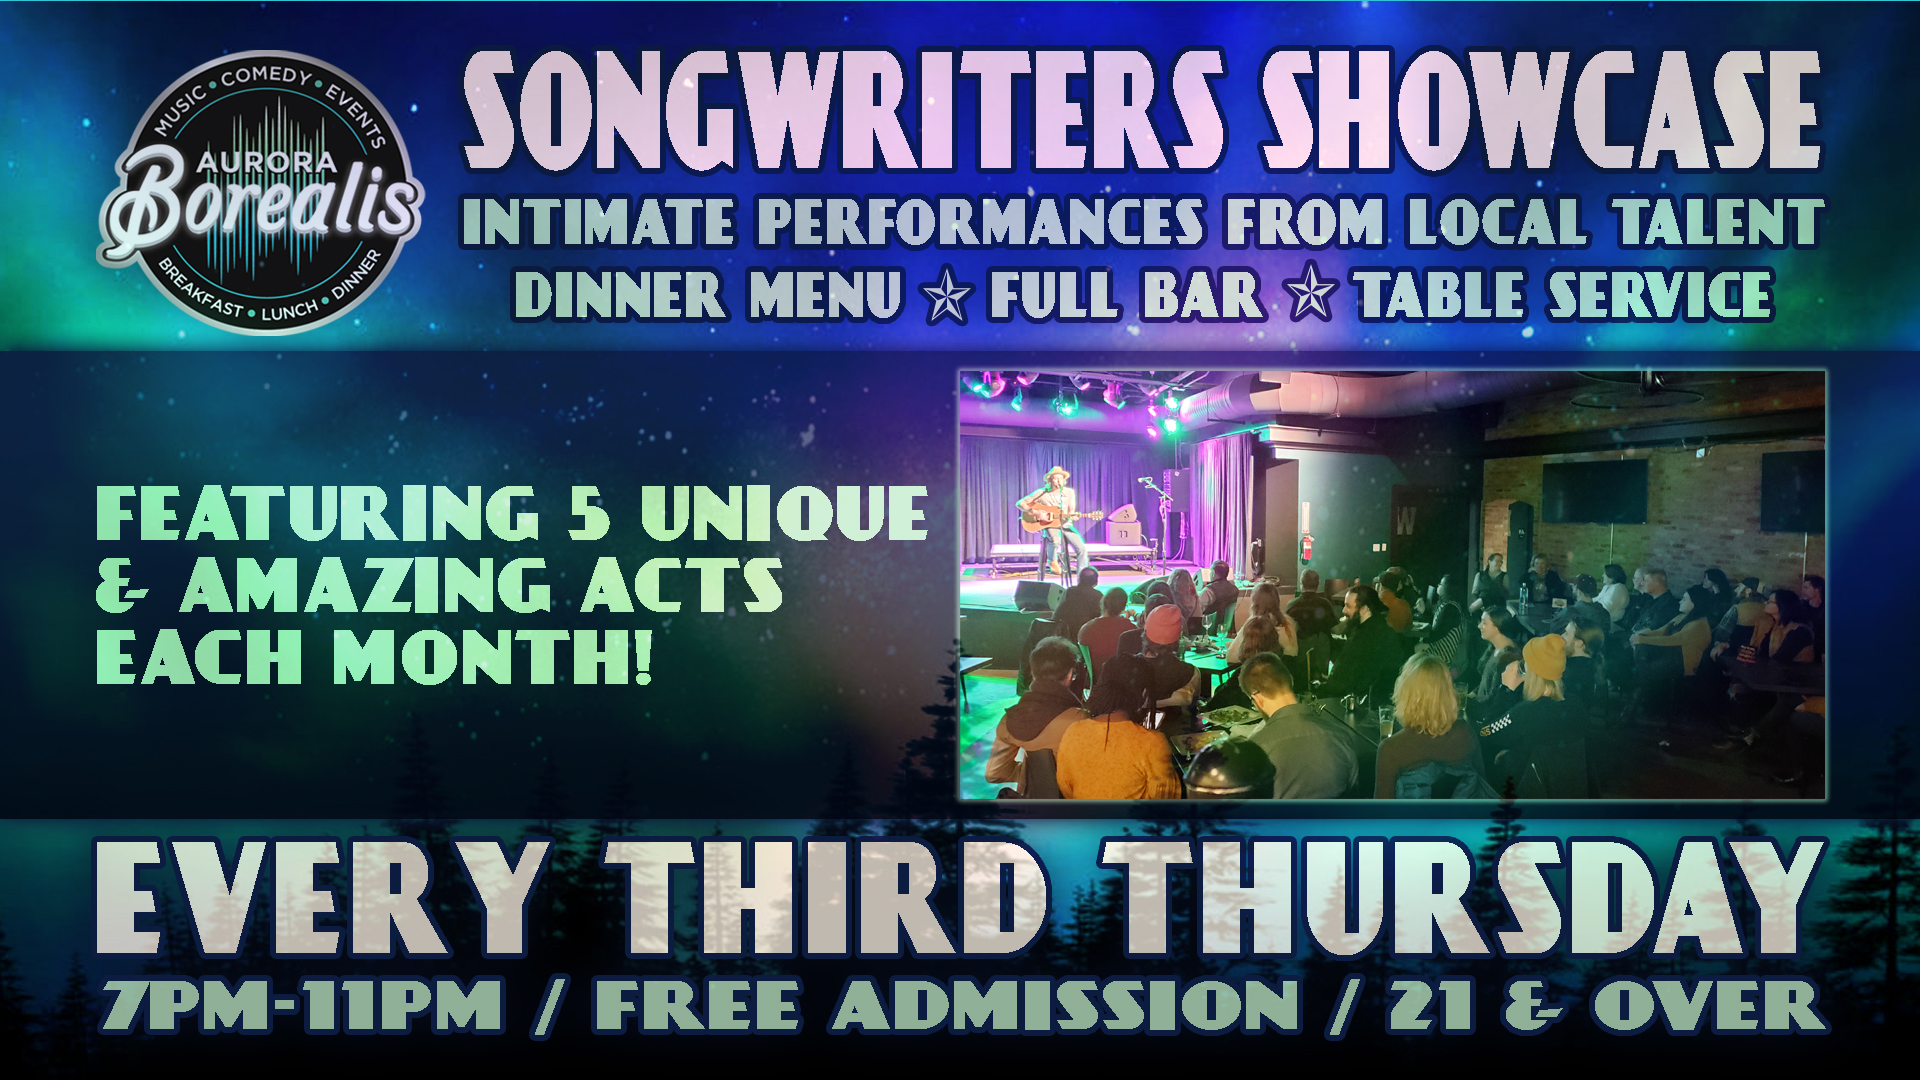 Songwriters Showcase: Intimate performances from local artists